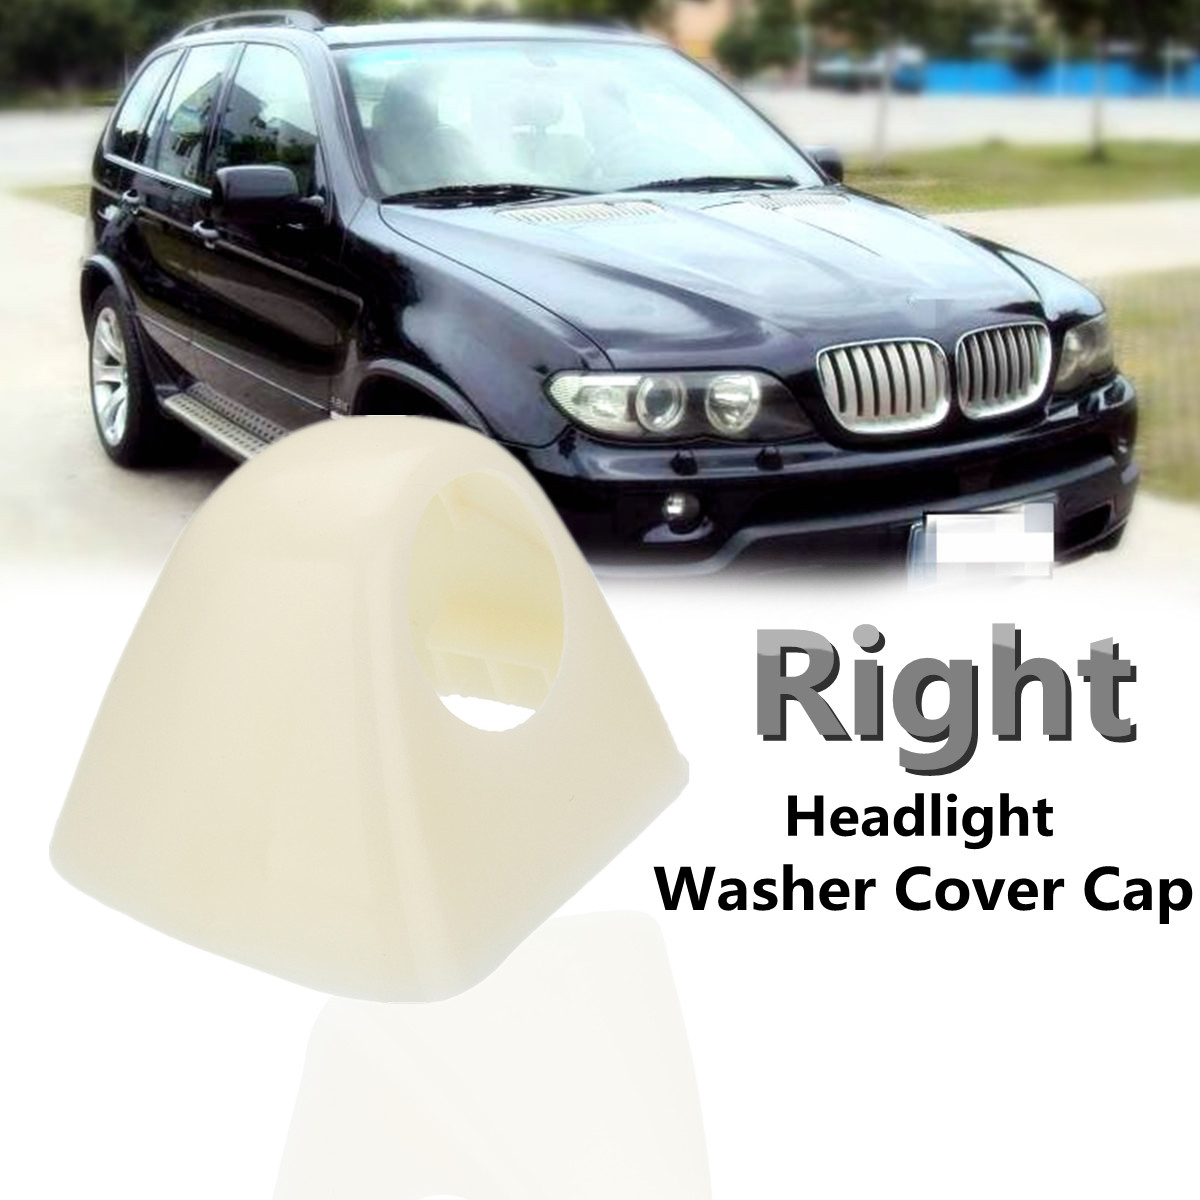 Car Right Side Headlight Washer Nozzle Cover Cap For BMW X5 E53 2003 2004 2005 2006